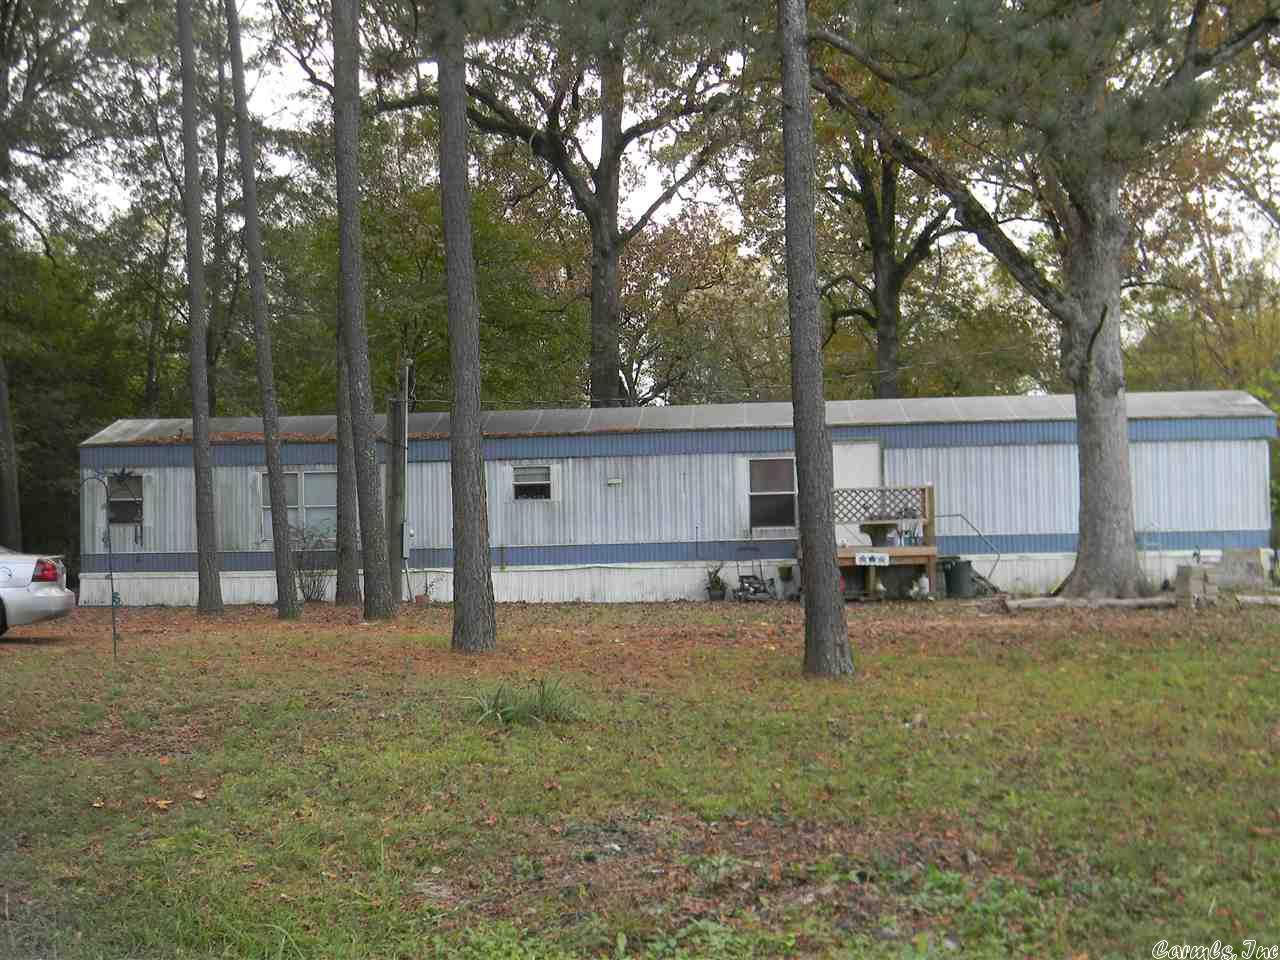 103 - 108 Well Rd #No, Rison, AR 71665